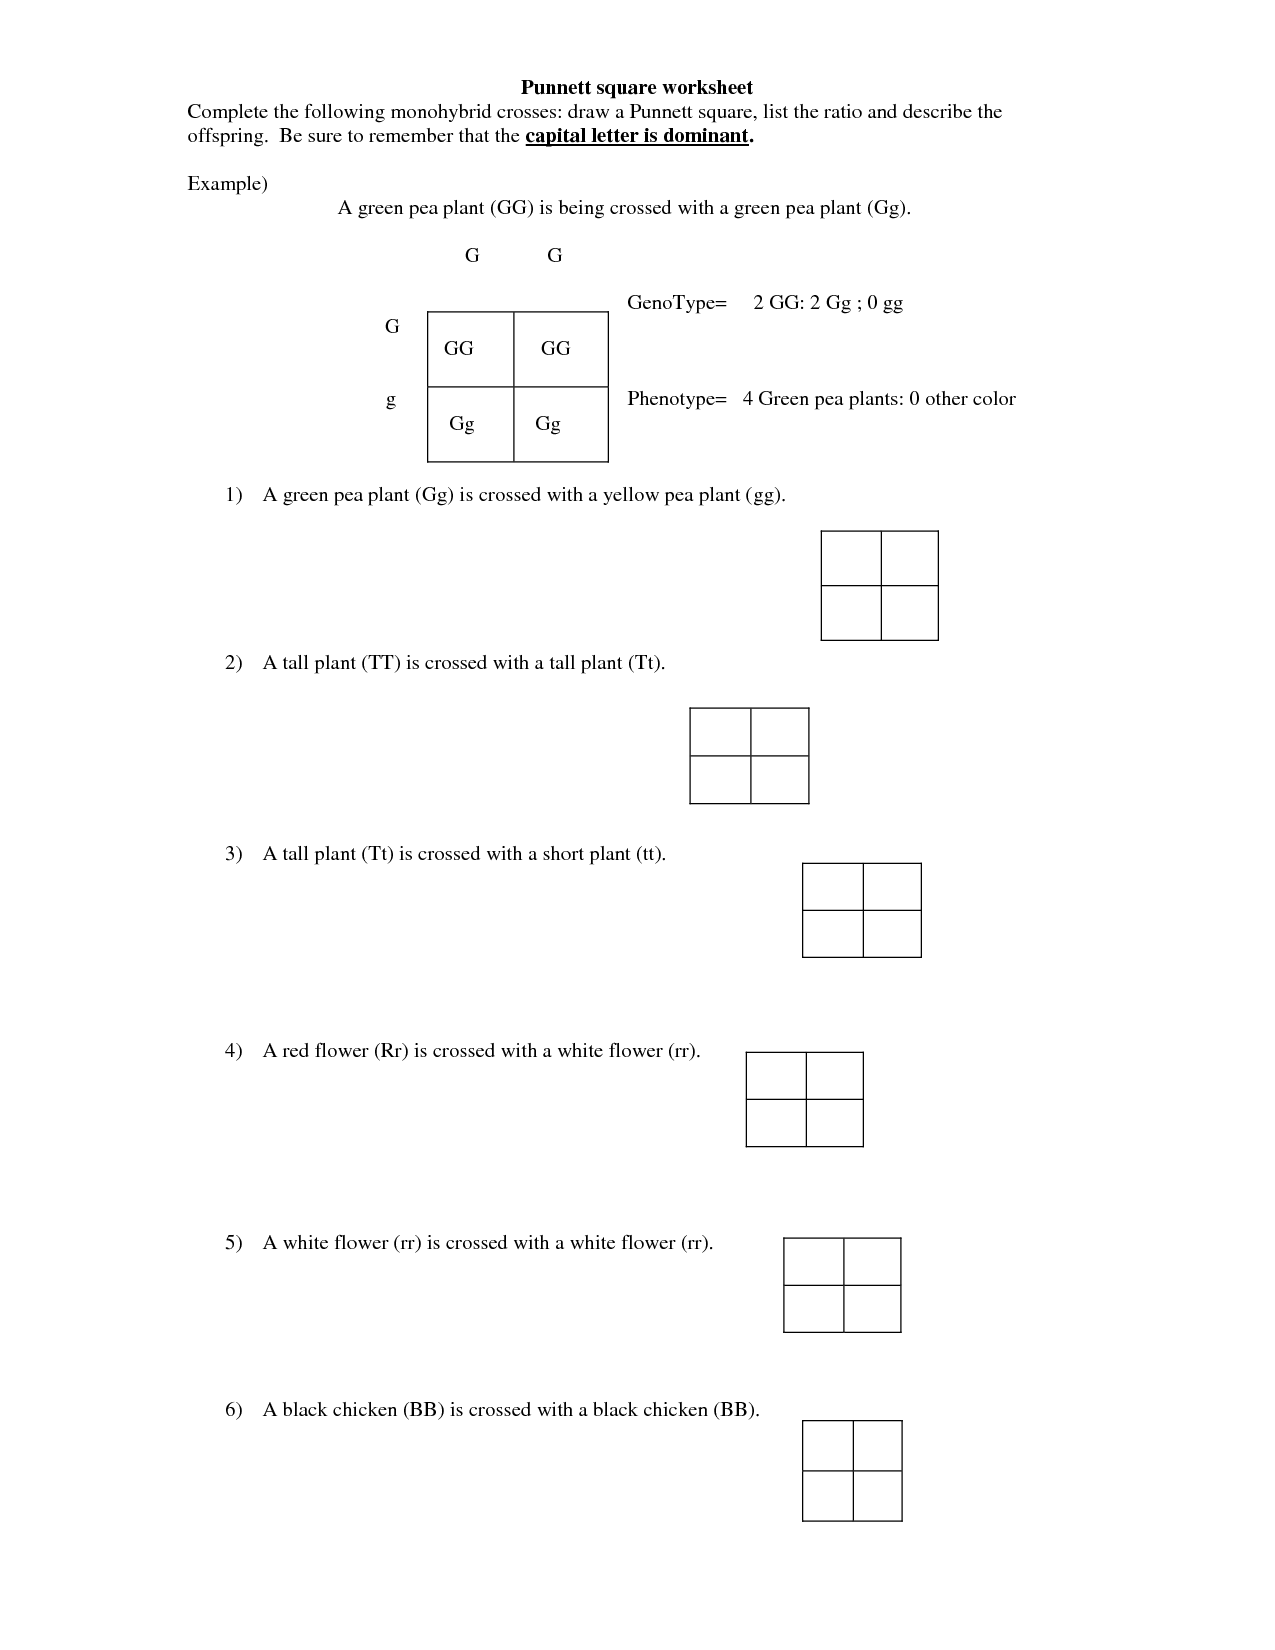 Worksheets Punnett Square Worksheet punnett square worksheet 2 answer key human genetics review answers